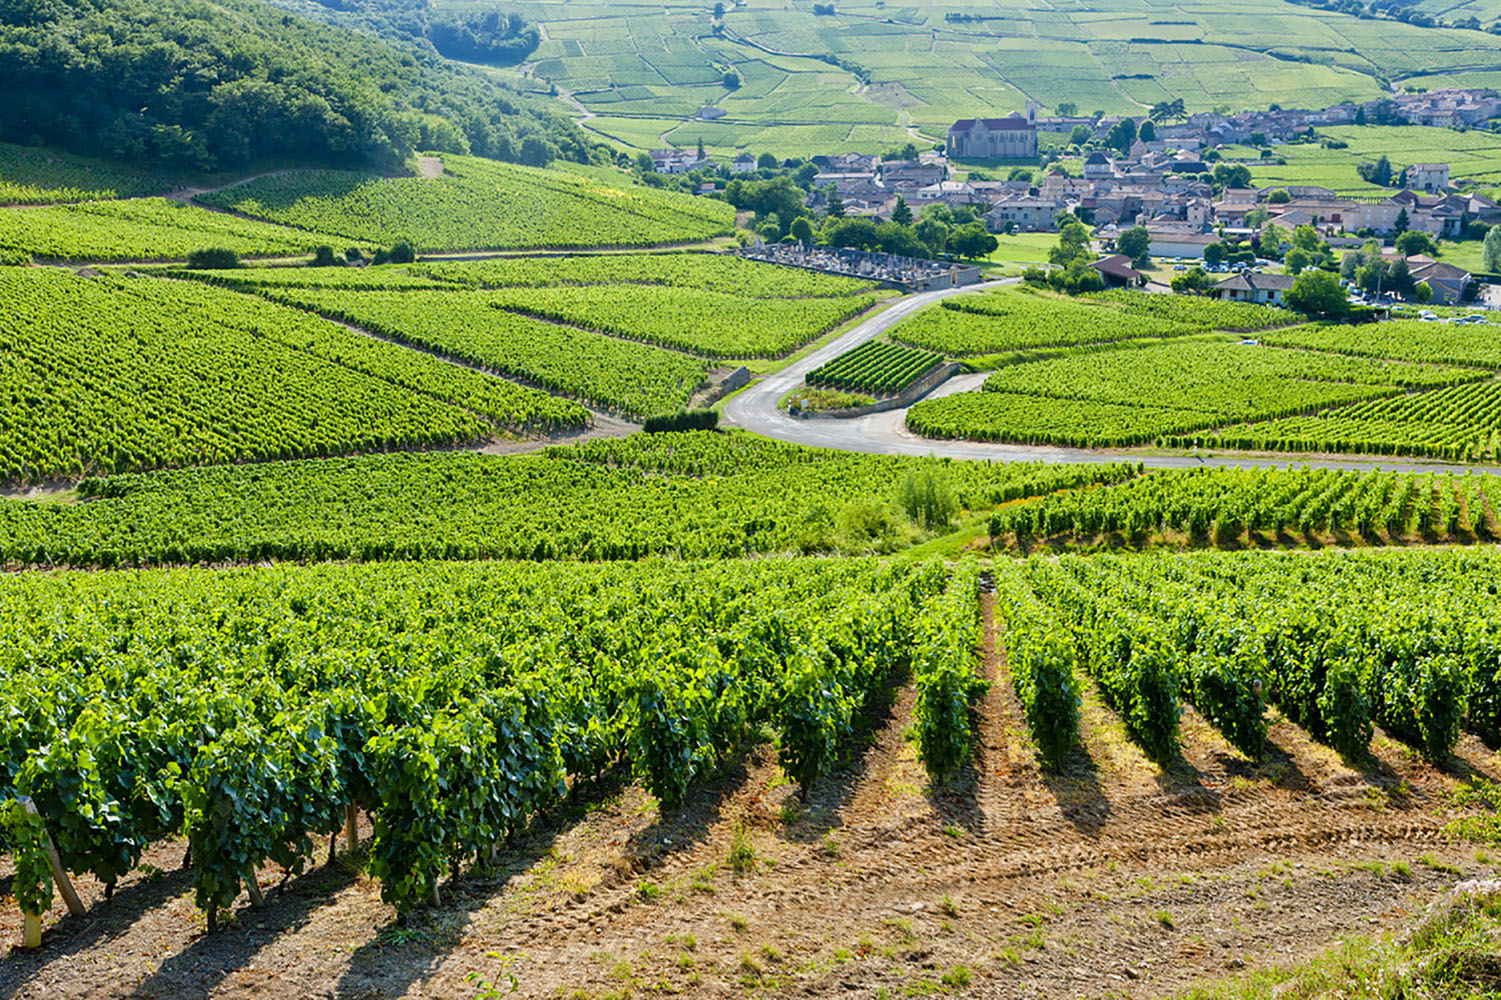 A lush, green vineyard in France.